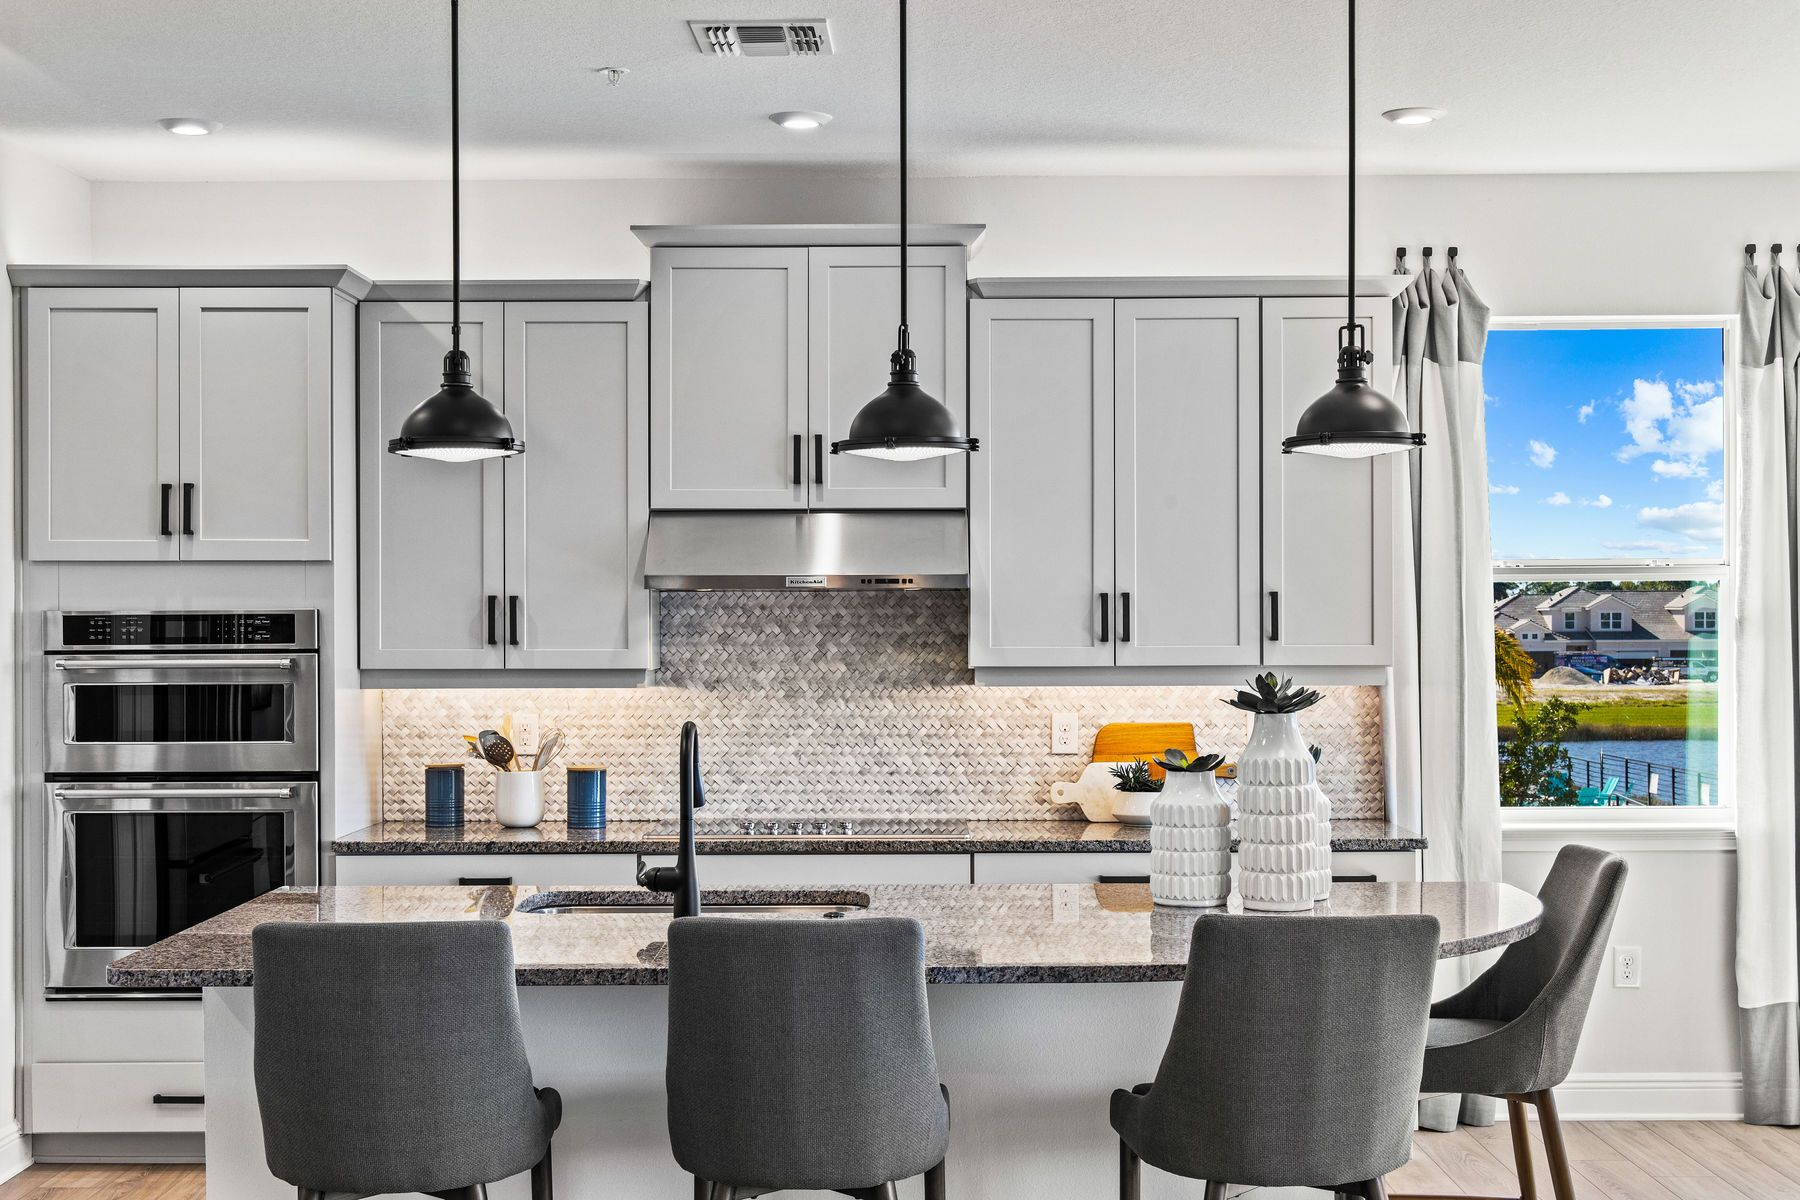 Kitchen featured in the Oceangrove By Mattamy Homes in Naples, FL